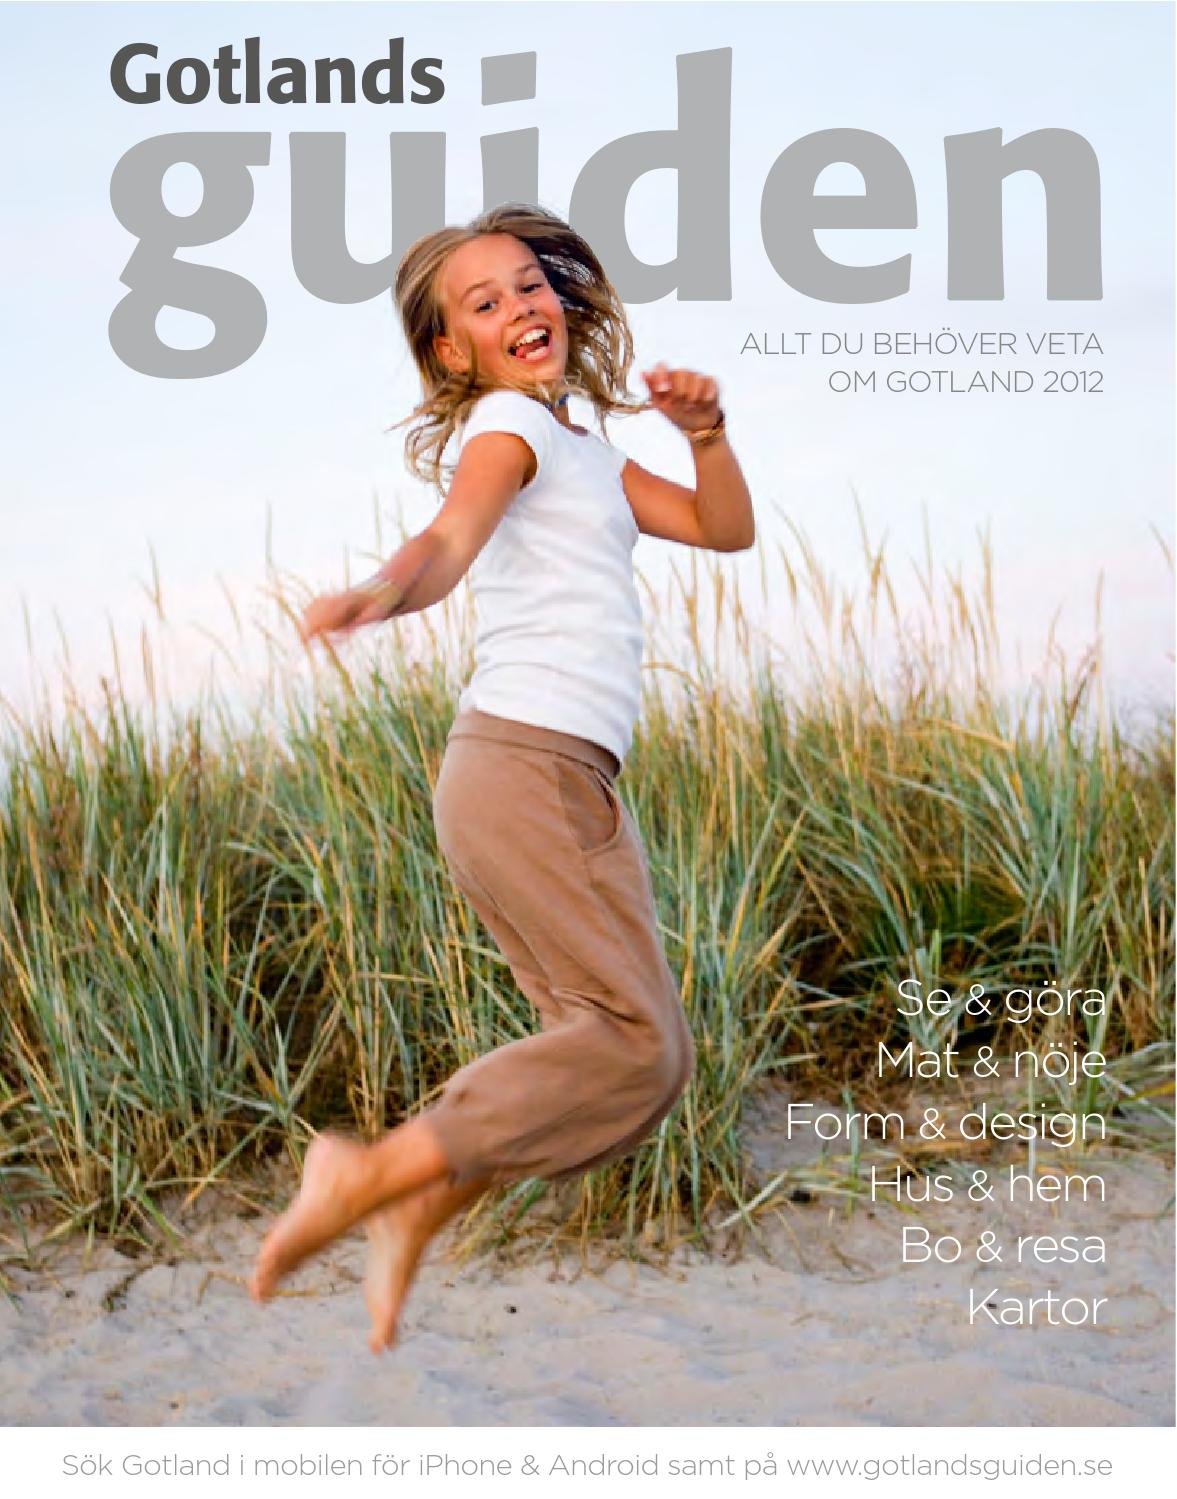 Gotlandsguiden 2012 by Gotlandsguiden - issuu 70712fa9d9072